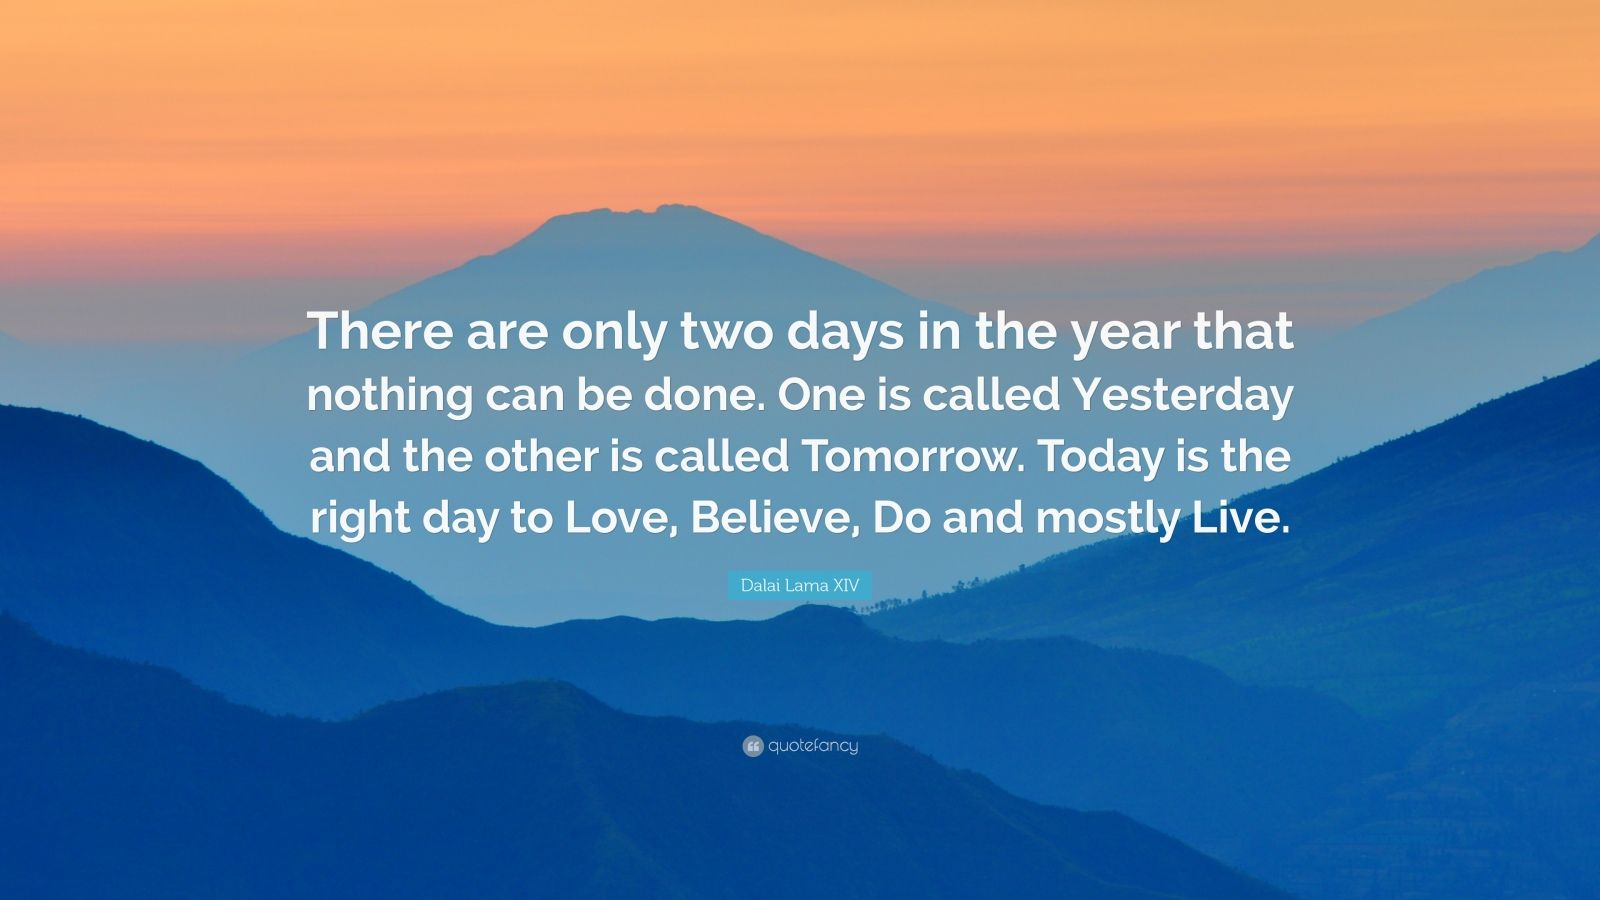 "Dalai Lama XIV Quote: ""There are only two days in the year that nothing can be done. One is called Yesterday and the other is called Tomorrow. Today is the right day to Love, Believe, Do and mostly Live."""